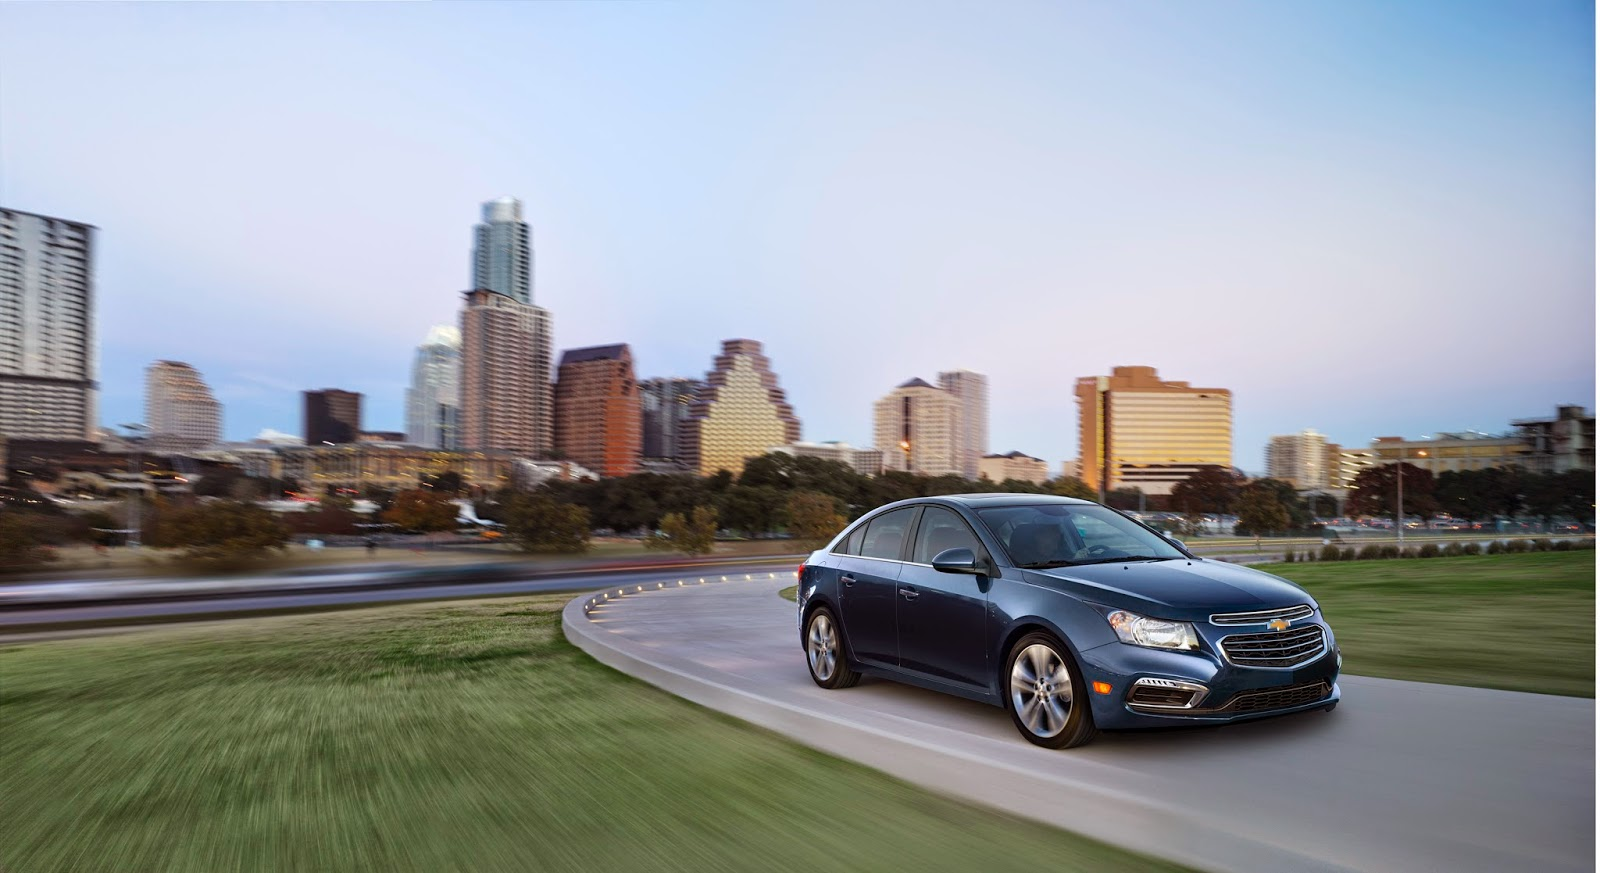 Chevrolet Cruze is 2014 Fleet Car of the Year